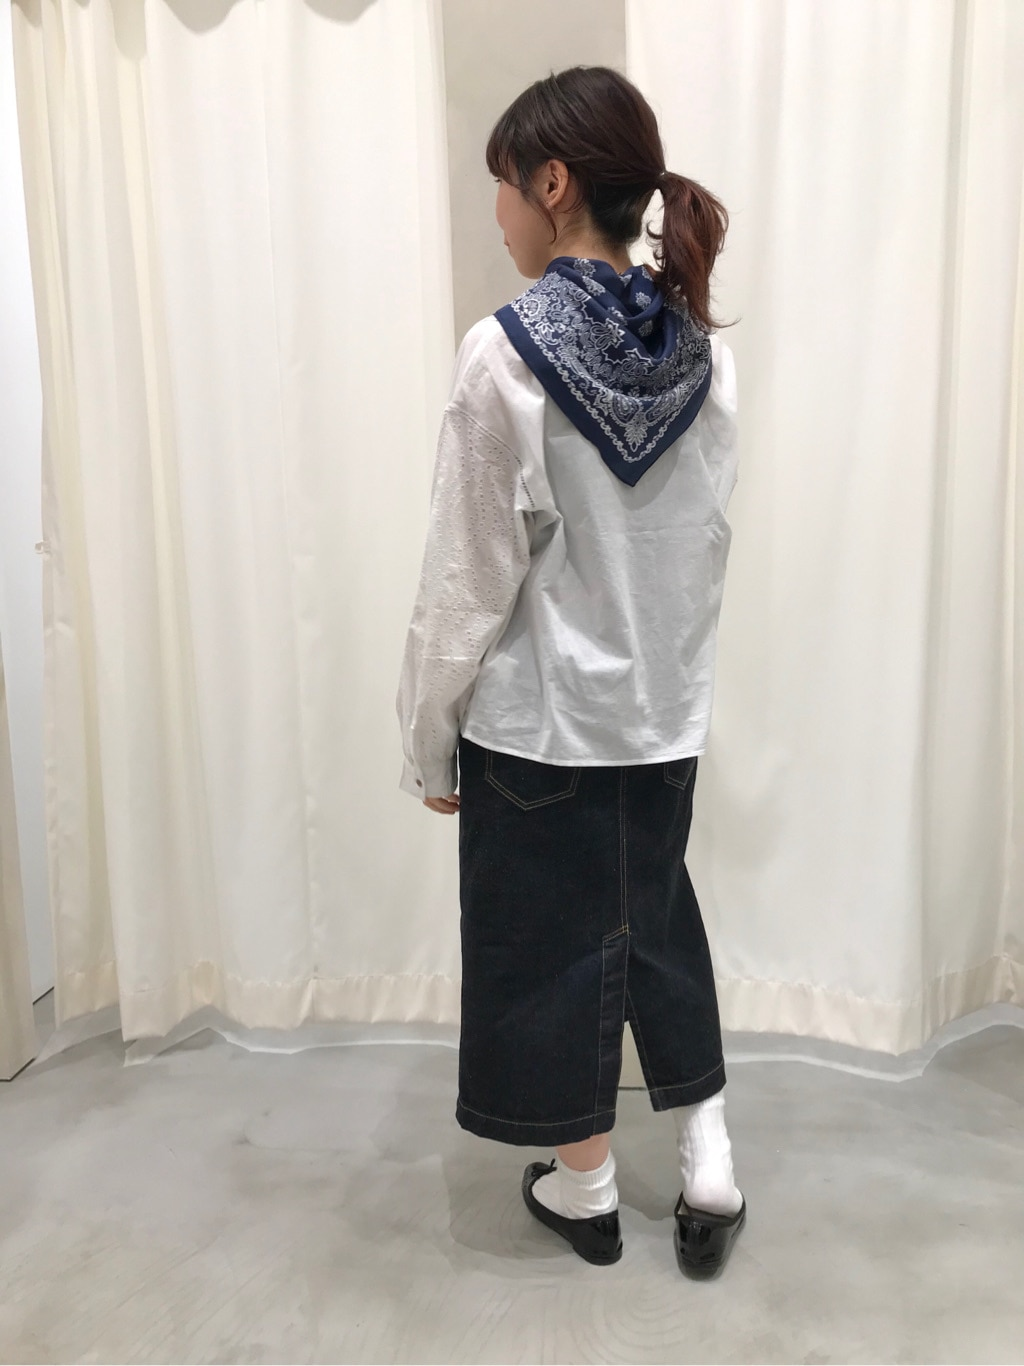 AMB SHOP PAR ICI CHILD WOMAN,PAR ICI ルミネ横浜 身長:154cm 2020.05.01